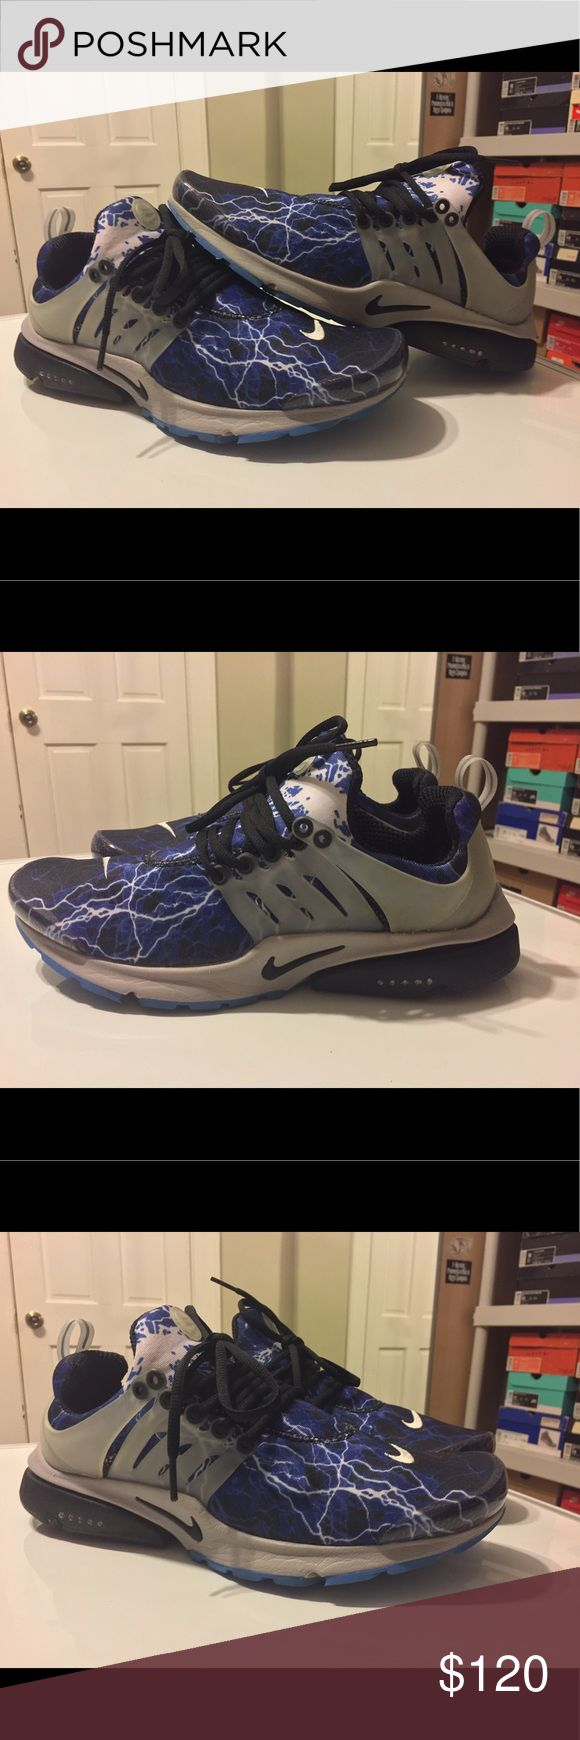 Mens Nike Presto Lightning Size M 10-11 Nike presto lightning   Size: m (10-11)  Great condition! Nike Shoes Sneakers